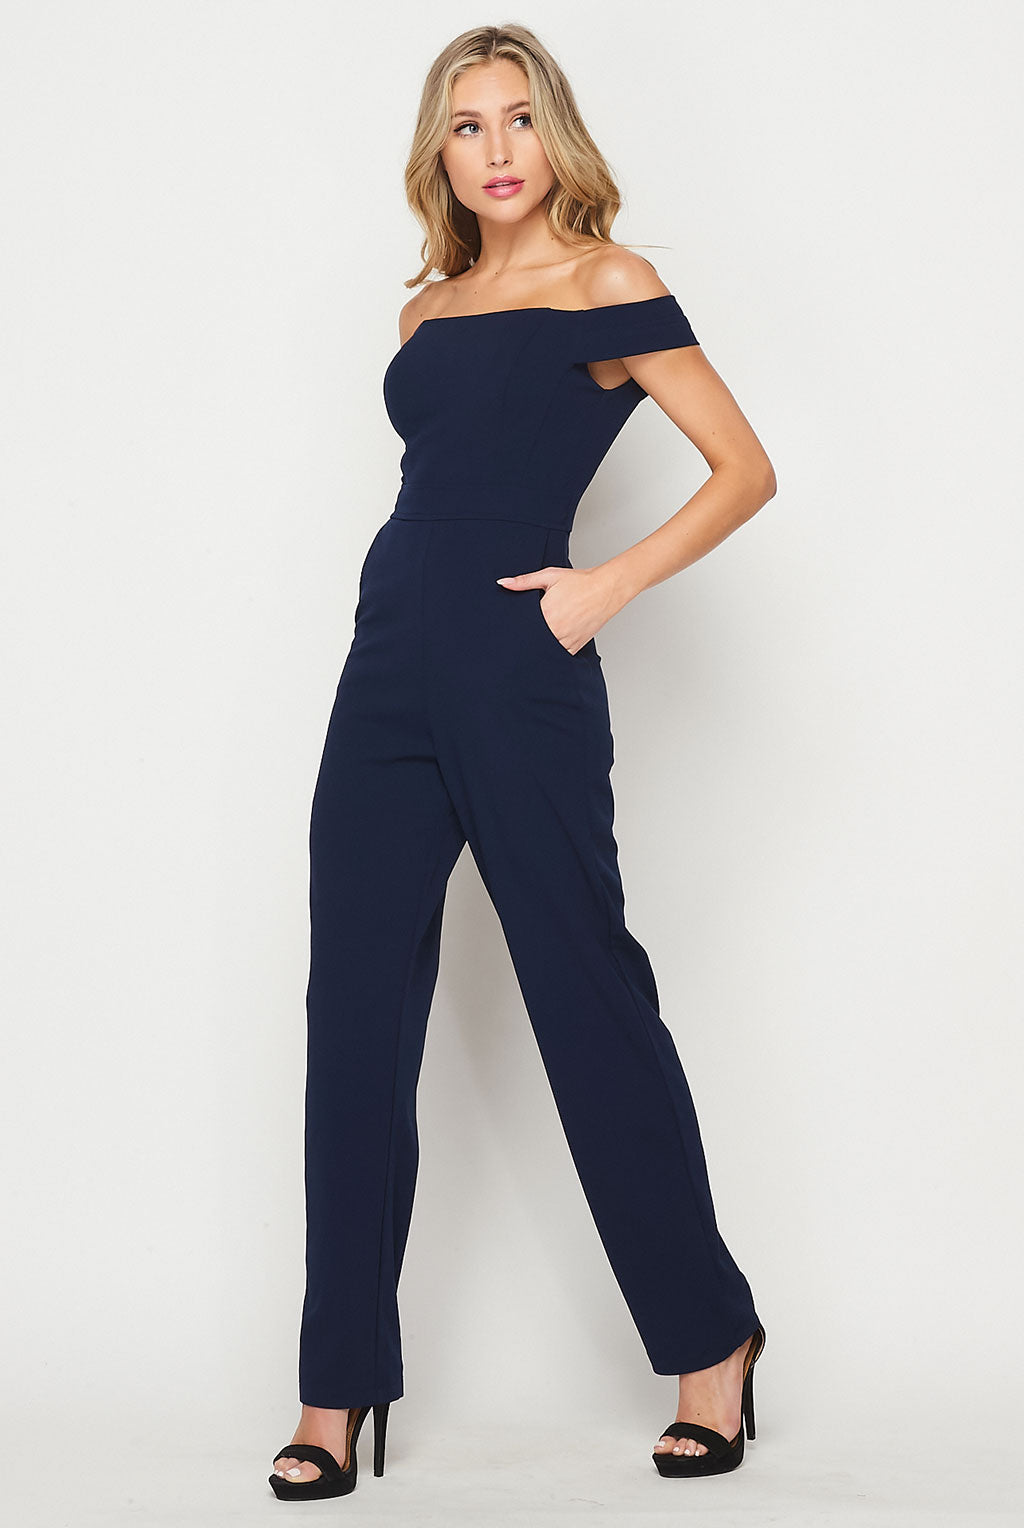 Teeze Me | Off The Shoulder W/ Pockets Jumpsuit | Navy